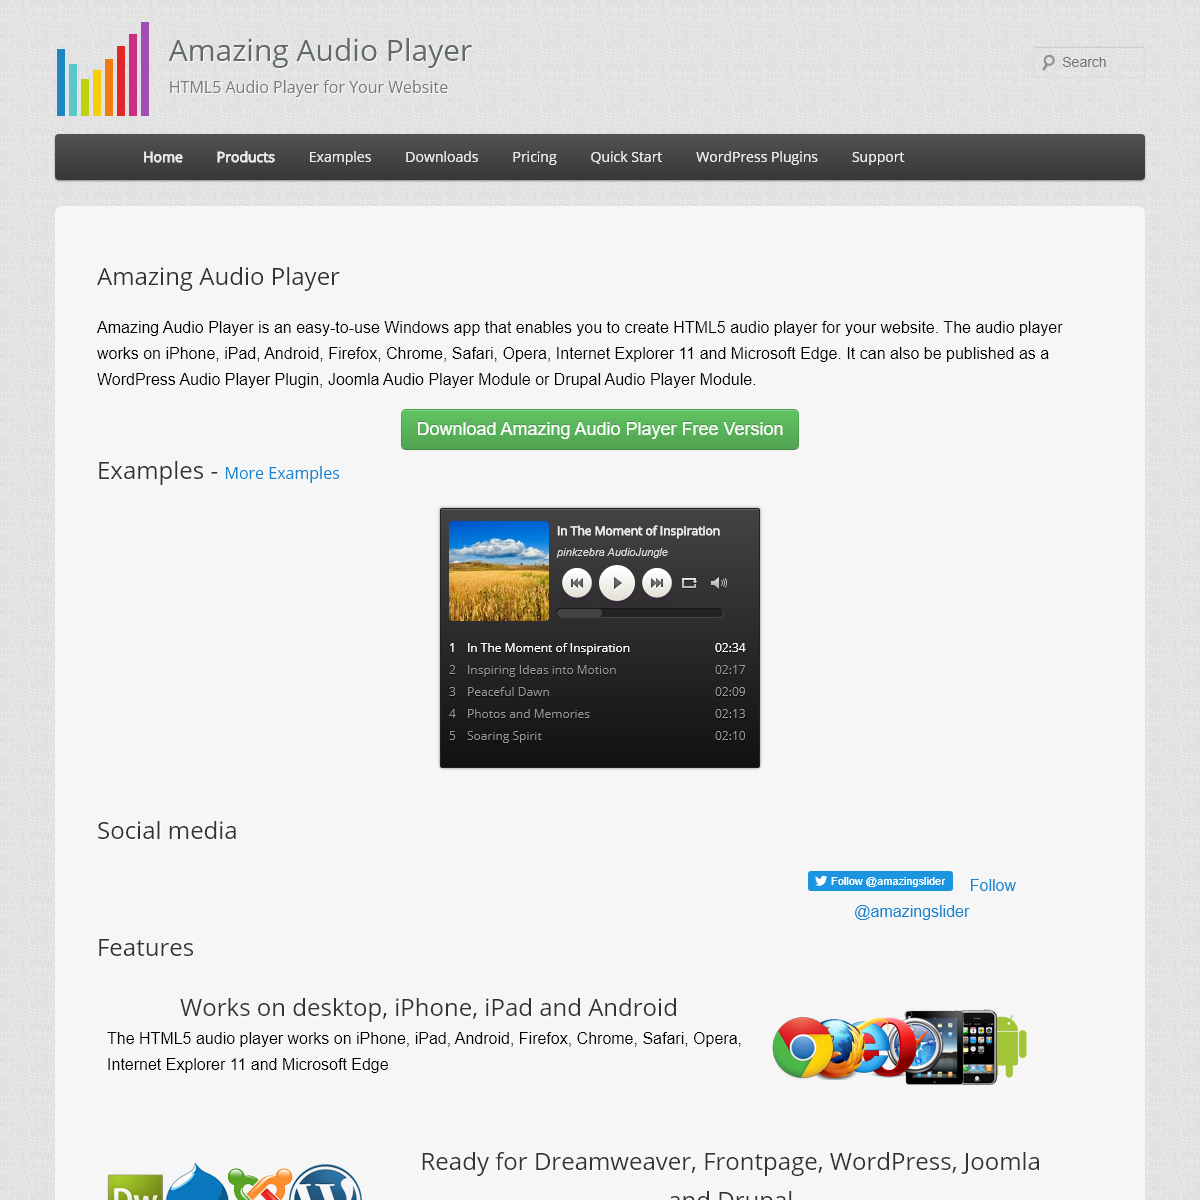 Amazing Audio Player - HTML5 Audio Player for Your Website